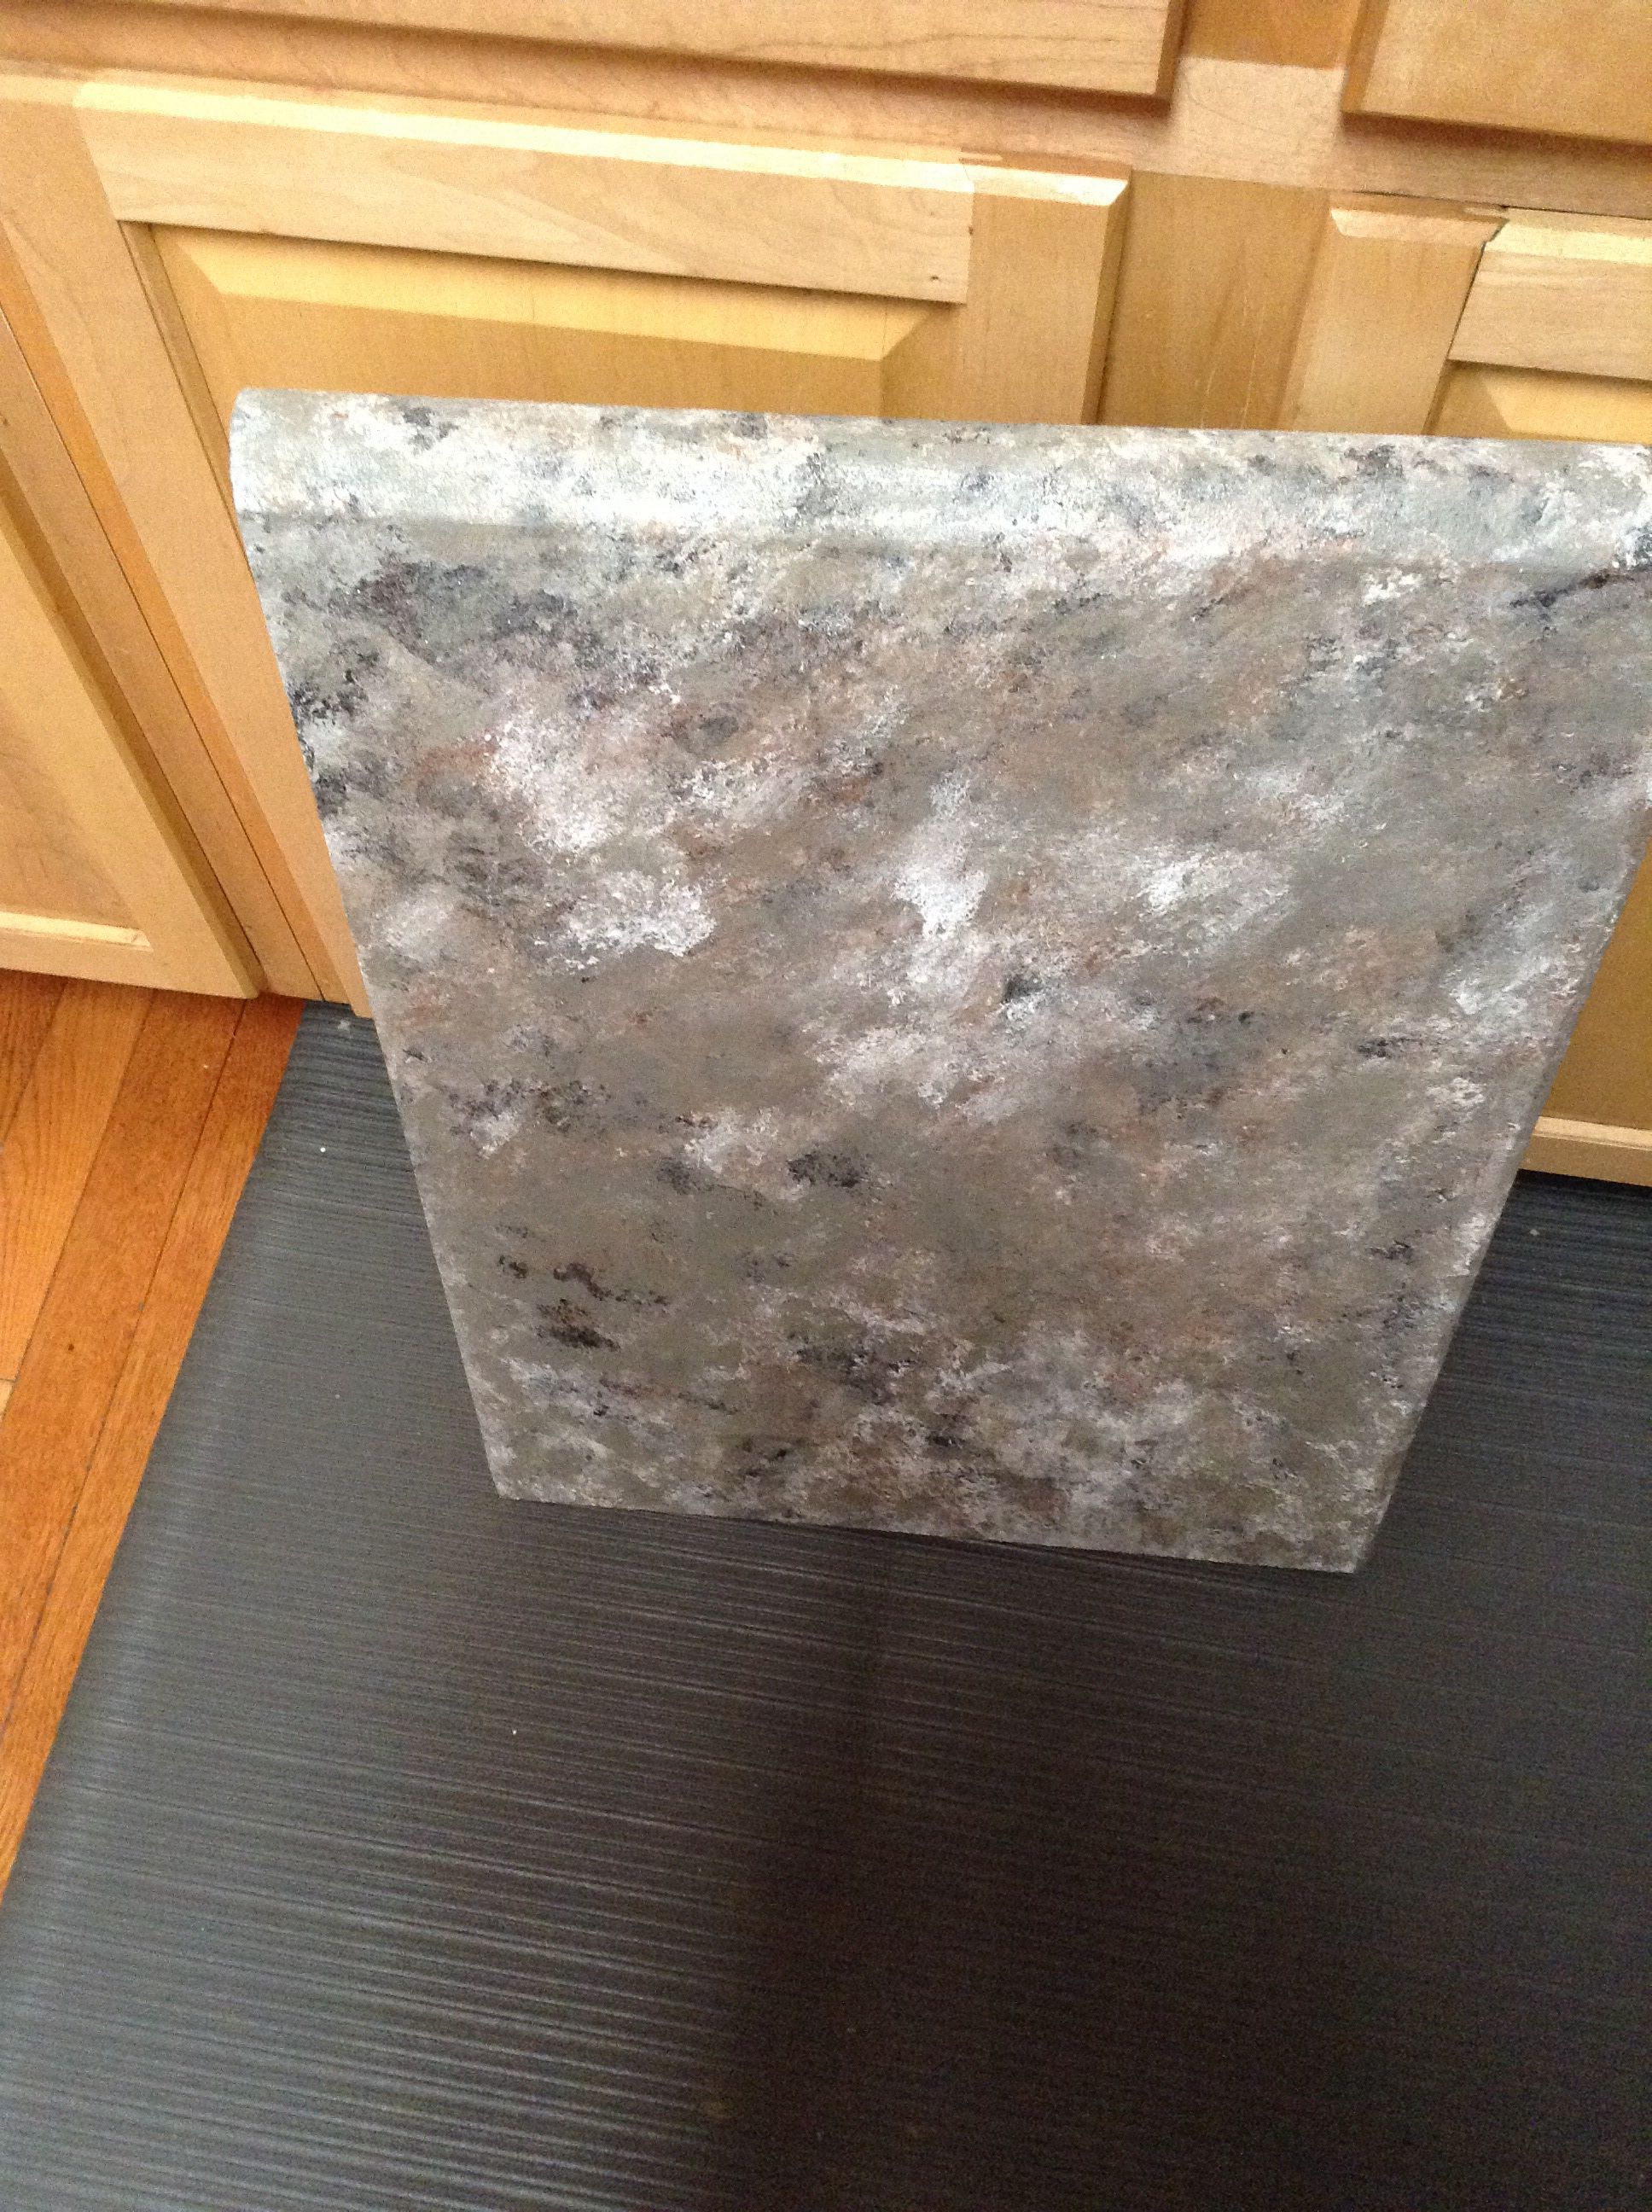 My Attempt At The Countertop Faux Granite Not Sure If I Love This